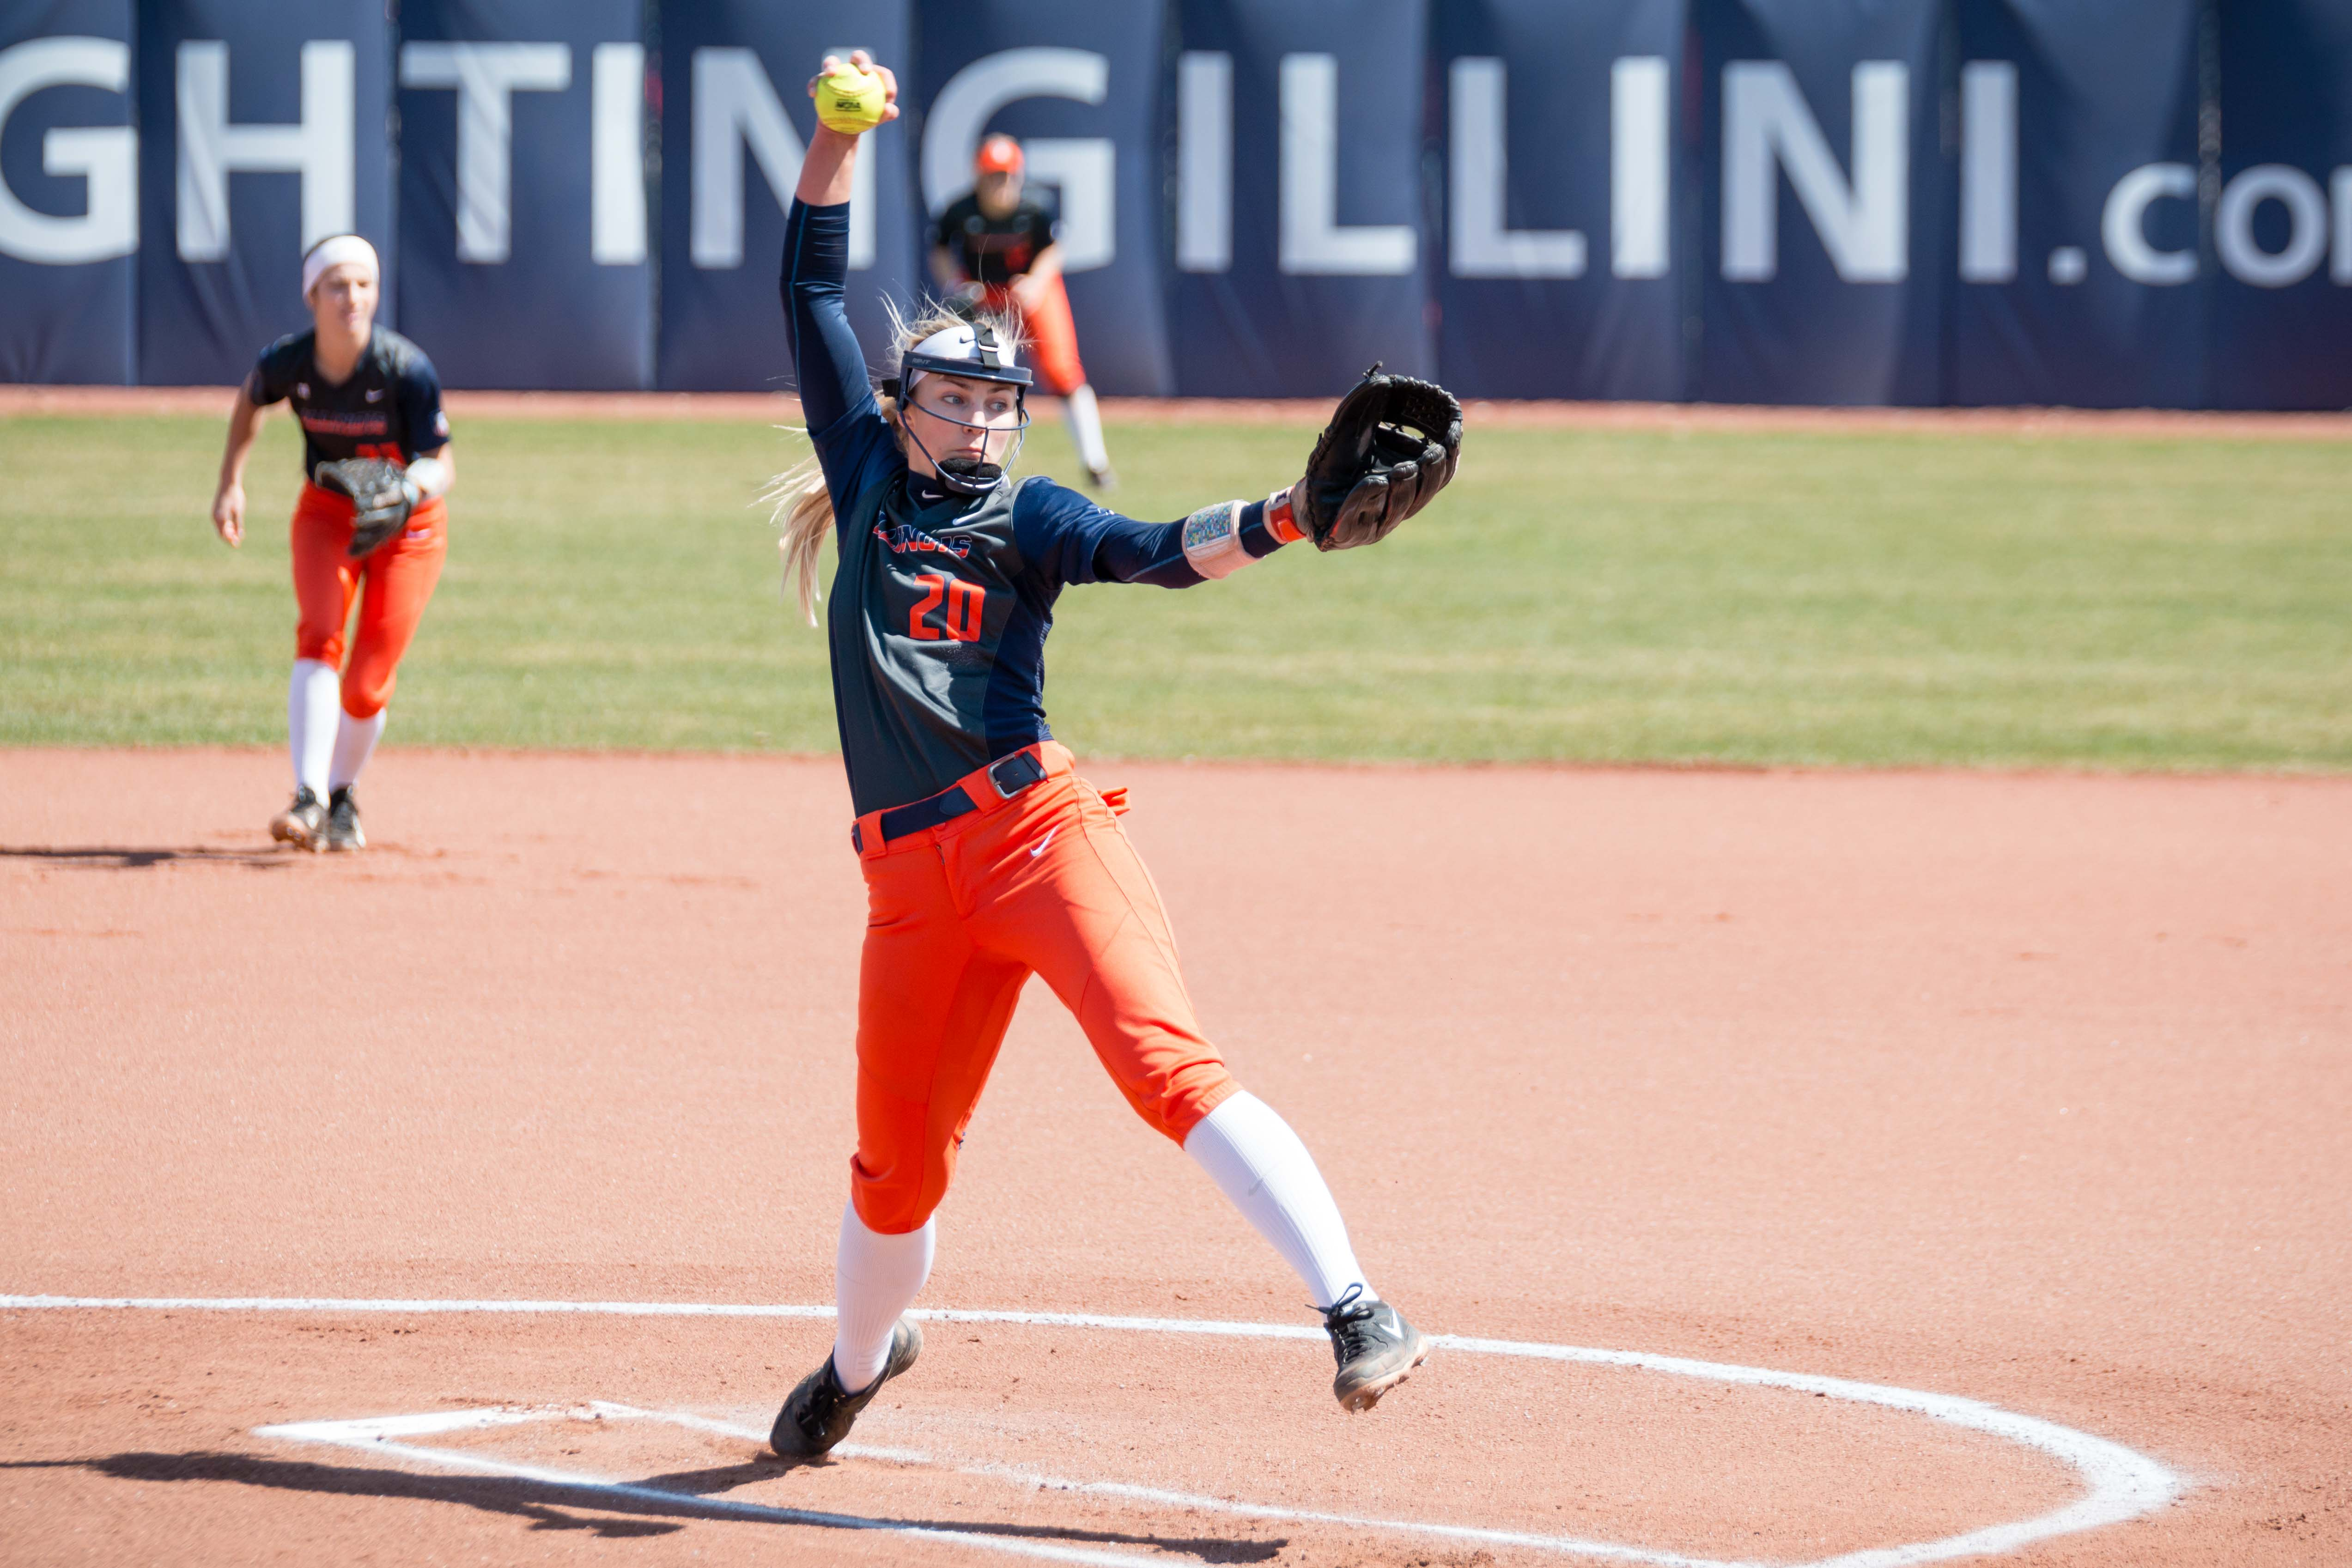 Illinois starting pitcher Breanna Wonderly delivers a pitch against Minnesota on April 1.